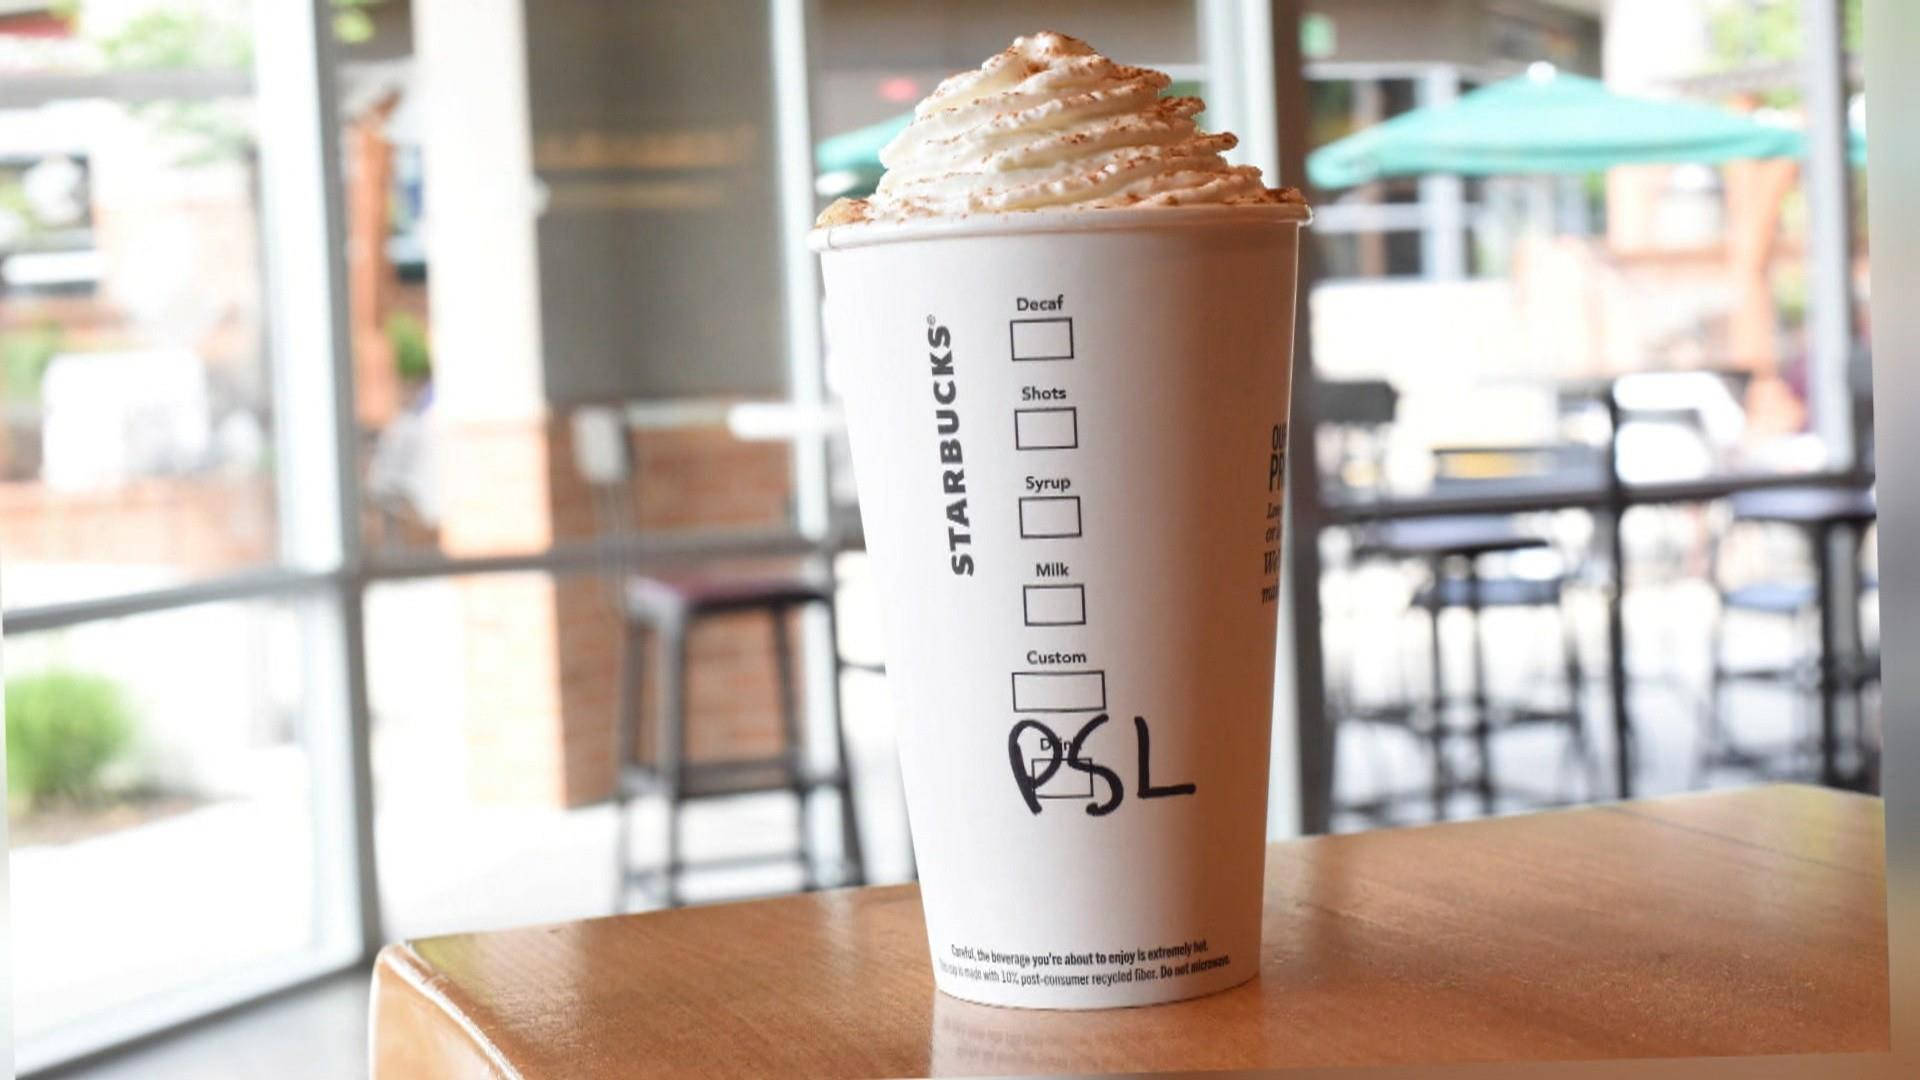 Pumpkin Spice Latte returns Aug. 27: Why the brain and body love PSL